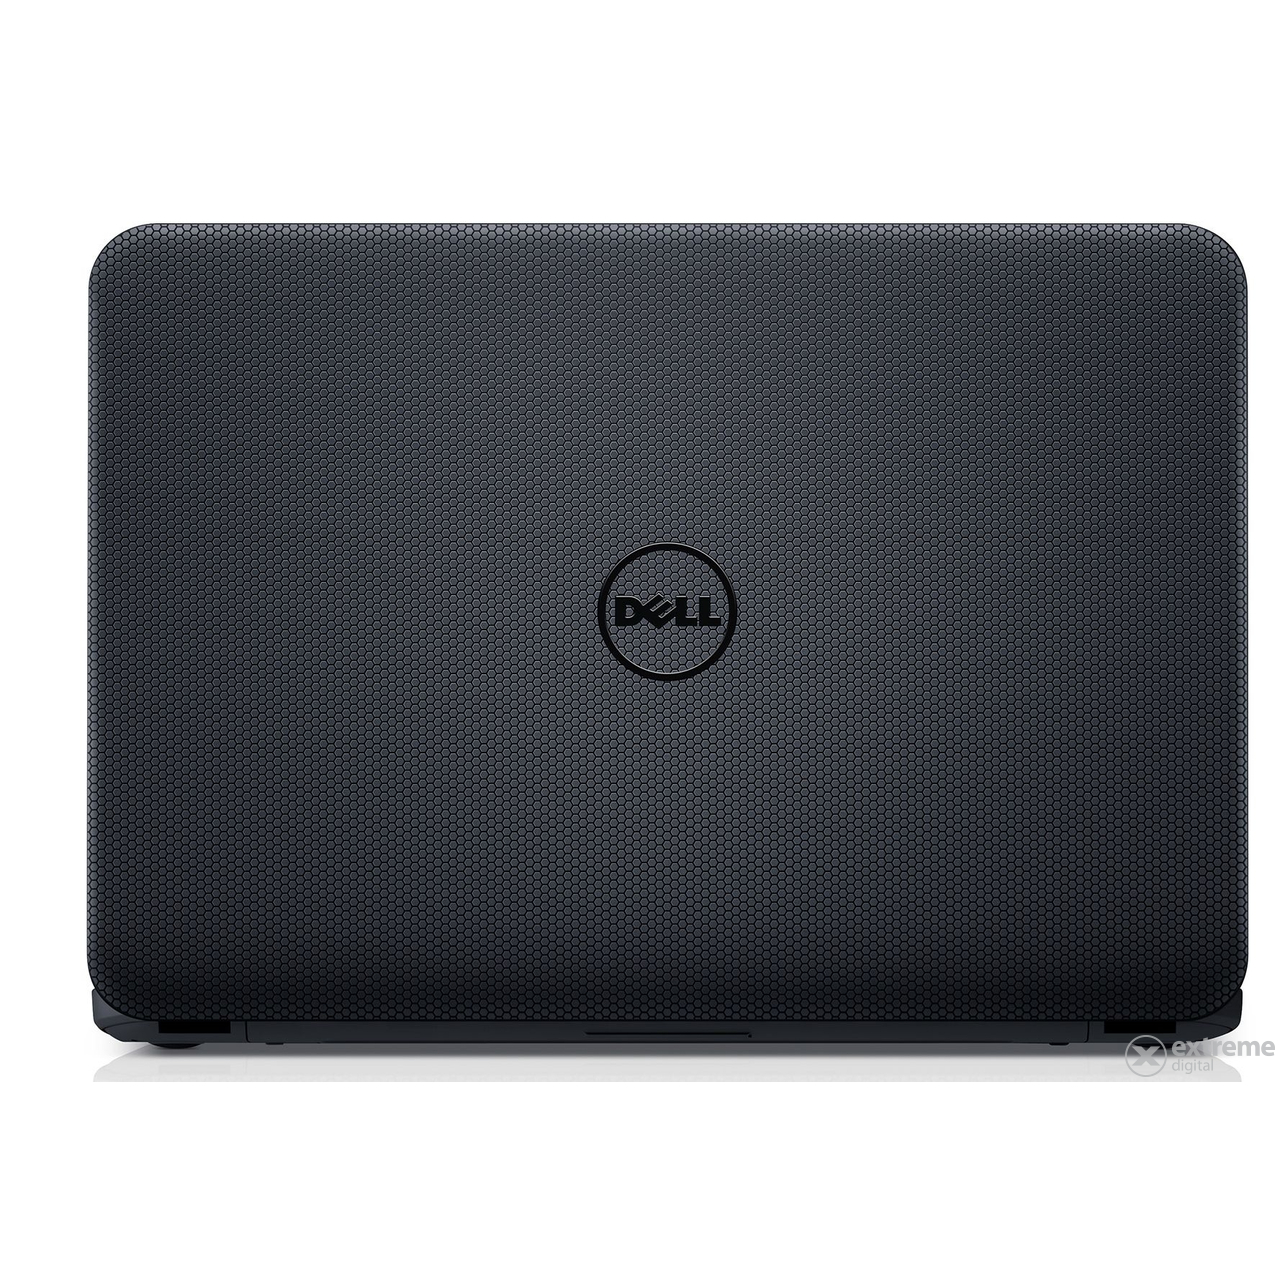 dell-inspiron-3541-168905-notebook-windows-8-1-fekete_c3f0aa81.jpg